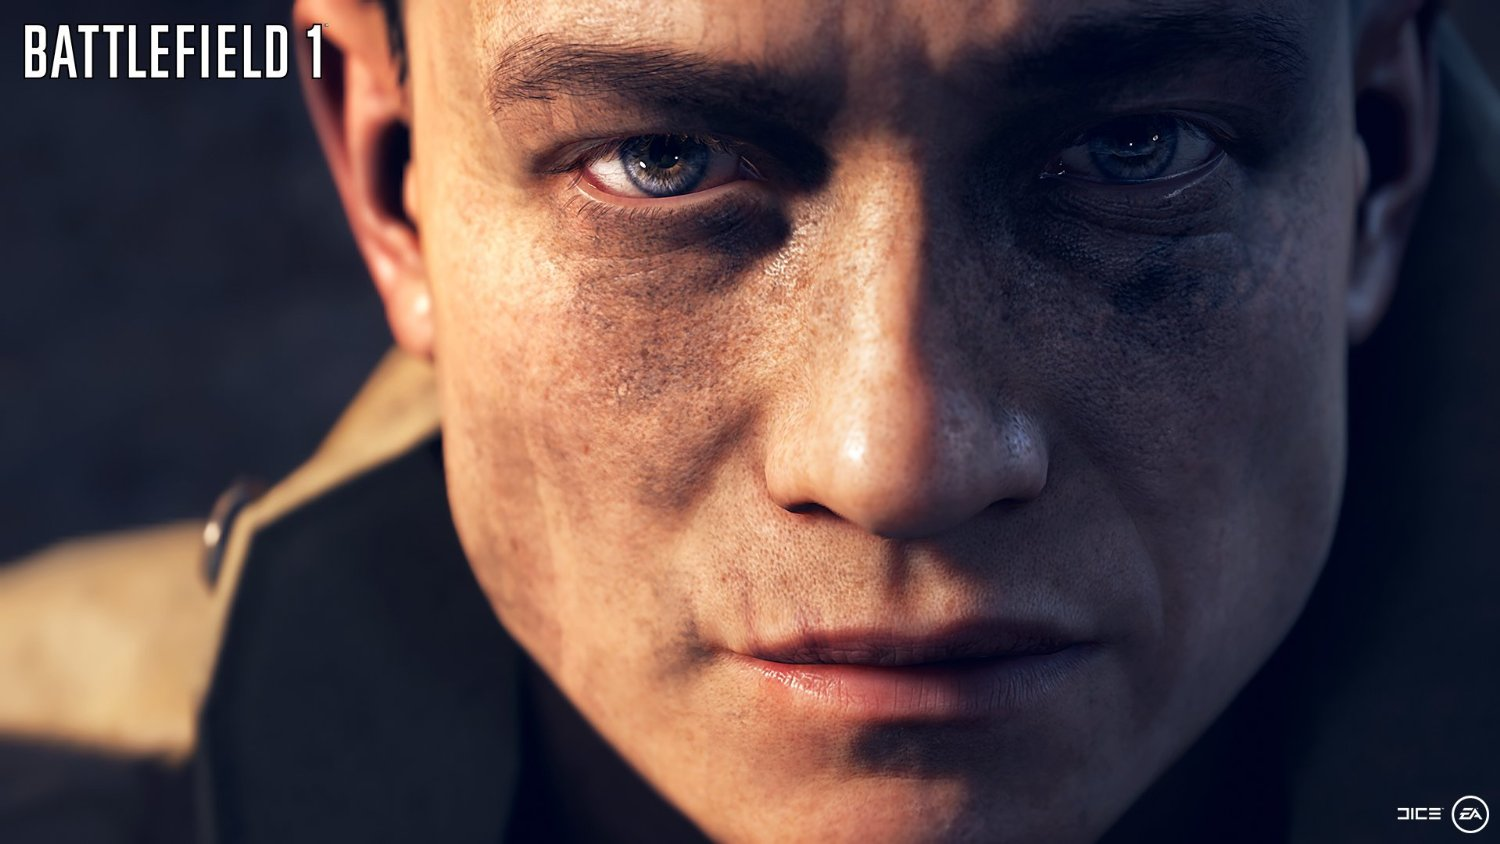 EA reveal more details about Battlefield 1 at EA Play